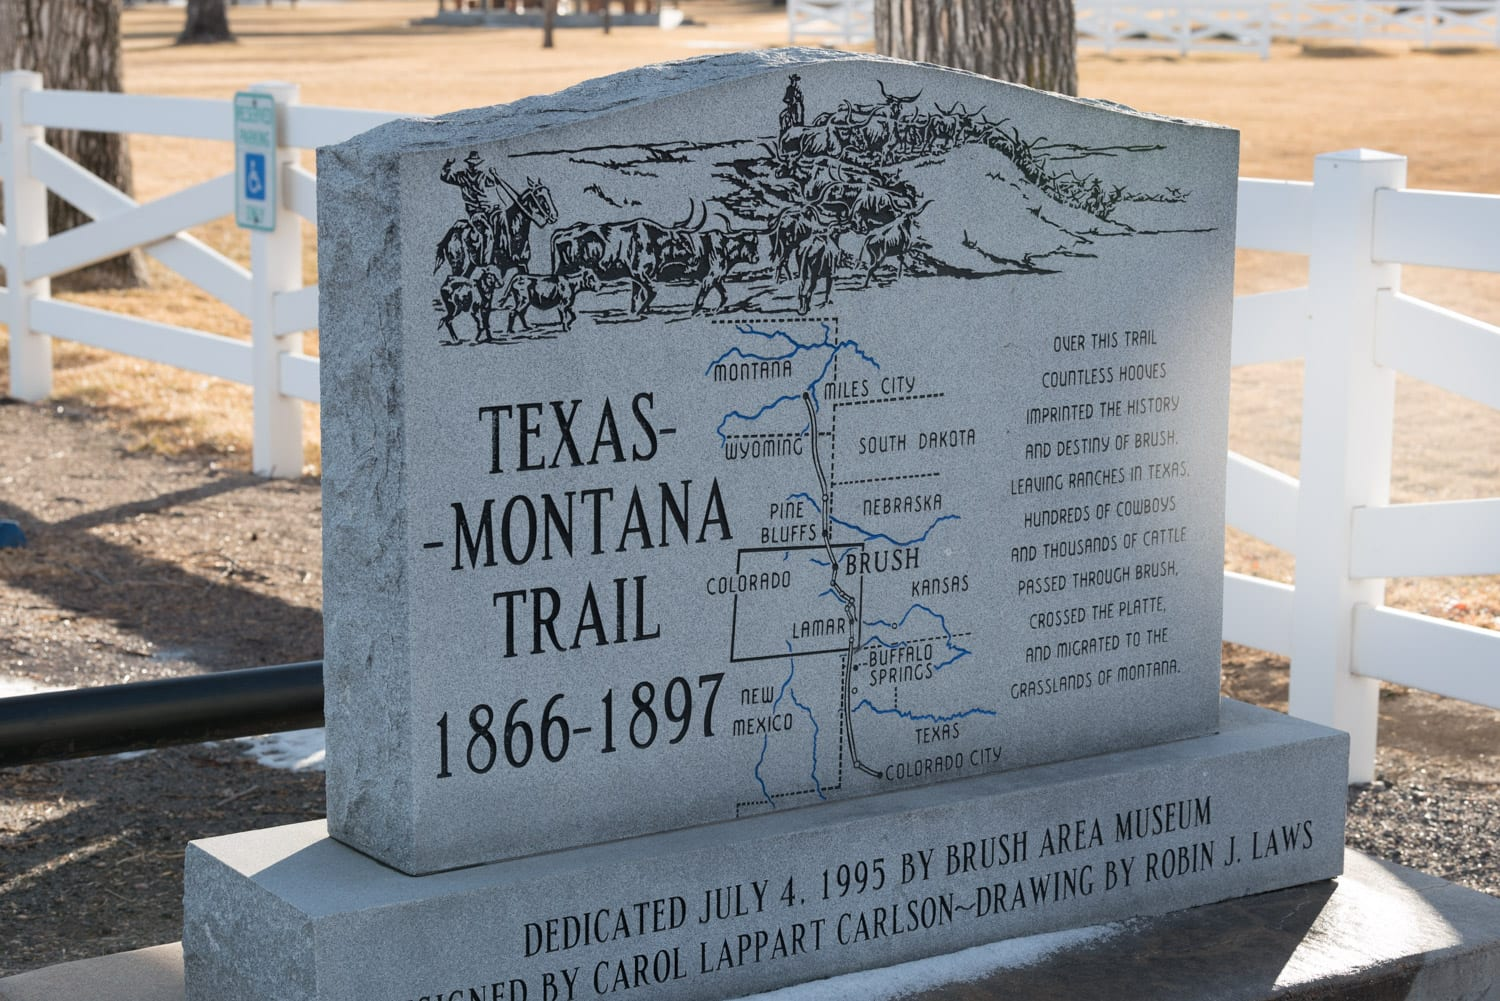 image of Texas Montana trails sign in Brush, CO